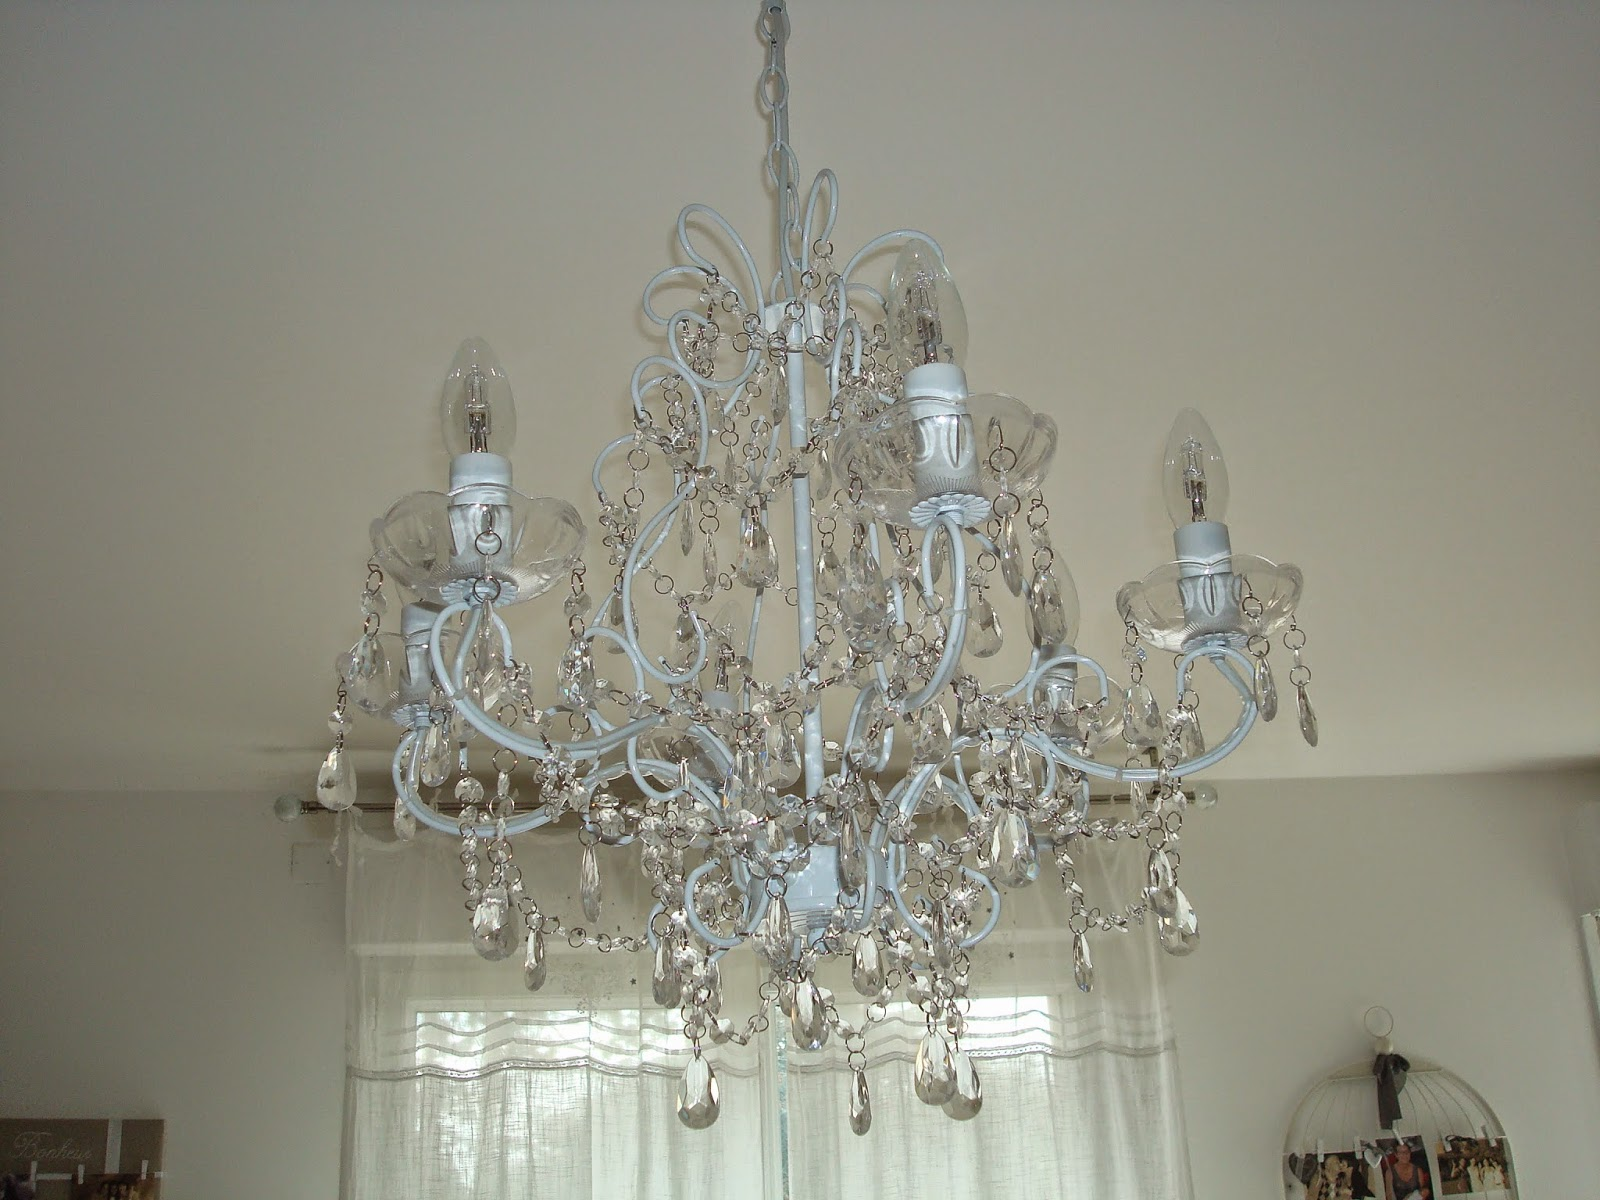 la d co d 39 alia lustre pampilles majesty maisons du monde